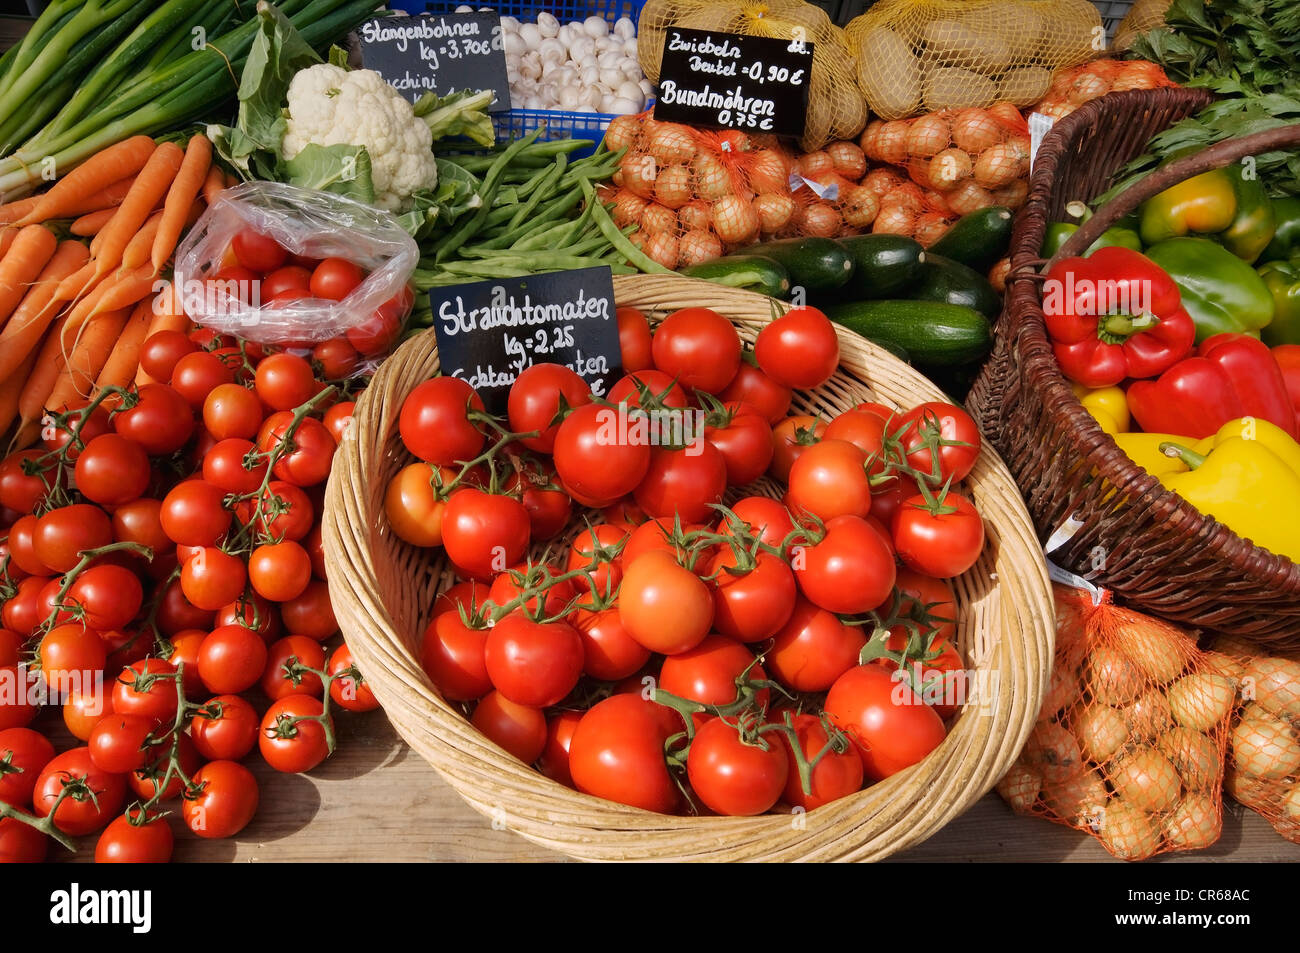 Sales display, colorful vegetables, tomatoes, peppers, onions, beans and carrots, farm shop, country store - Stock Image